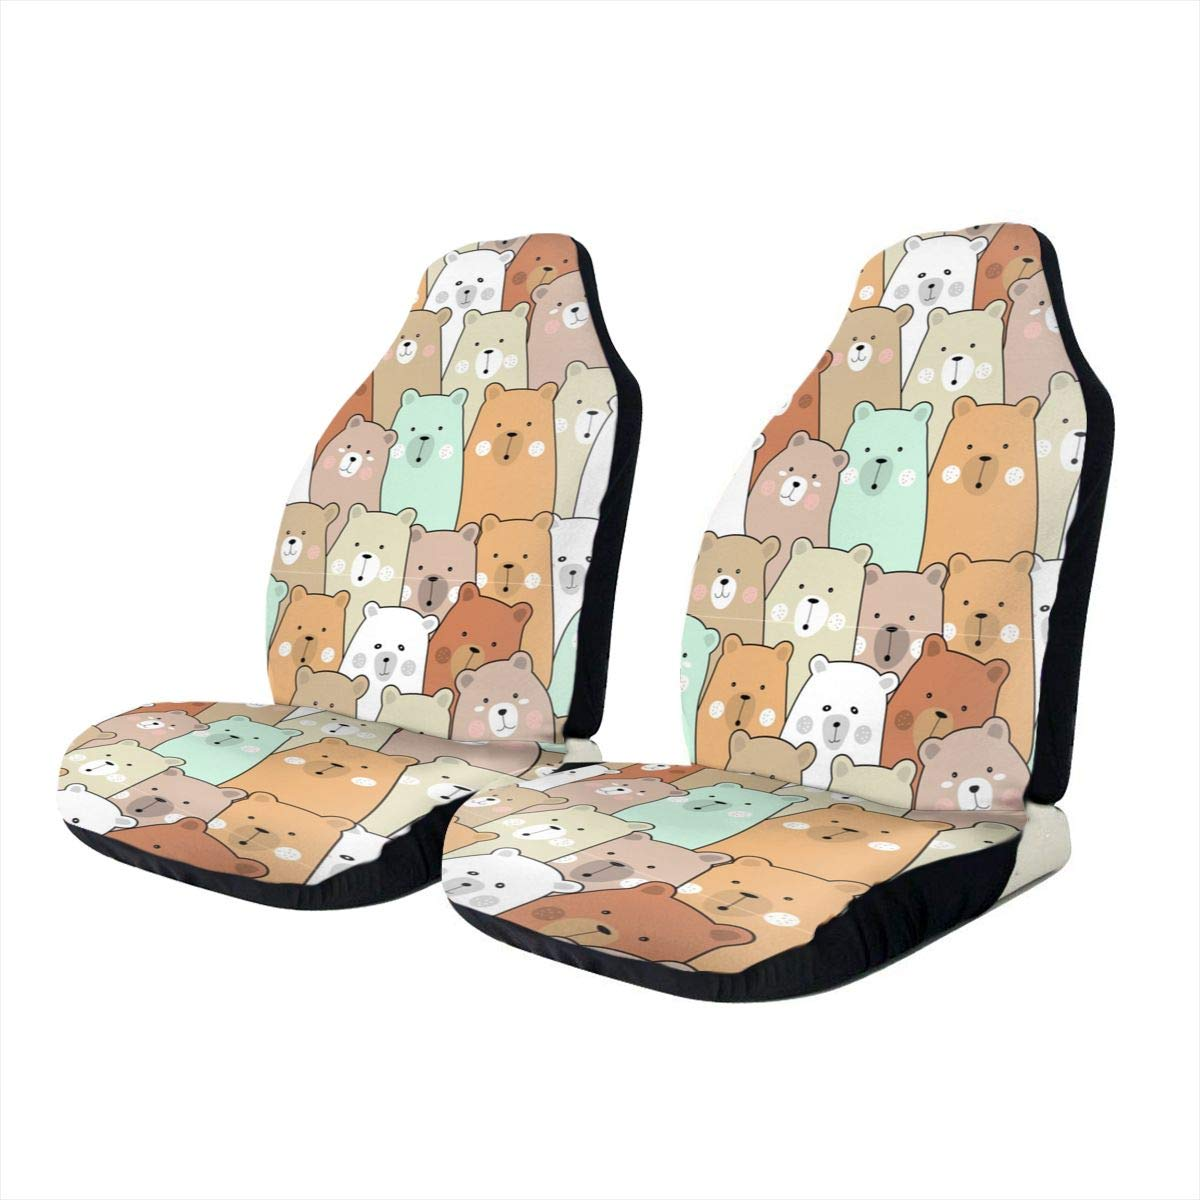 Baby Bear Car Seat Covers Set of 1pc//2pc,Vehicle Seat Protector Car Mat Covers Sedan Fit Most Vehicle Cars Truck SUV